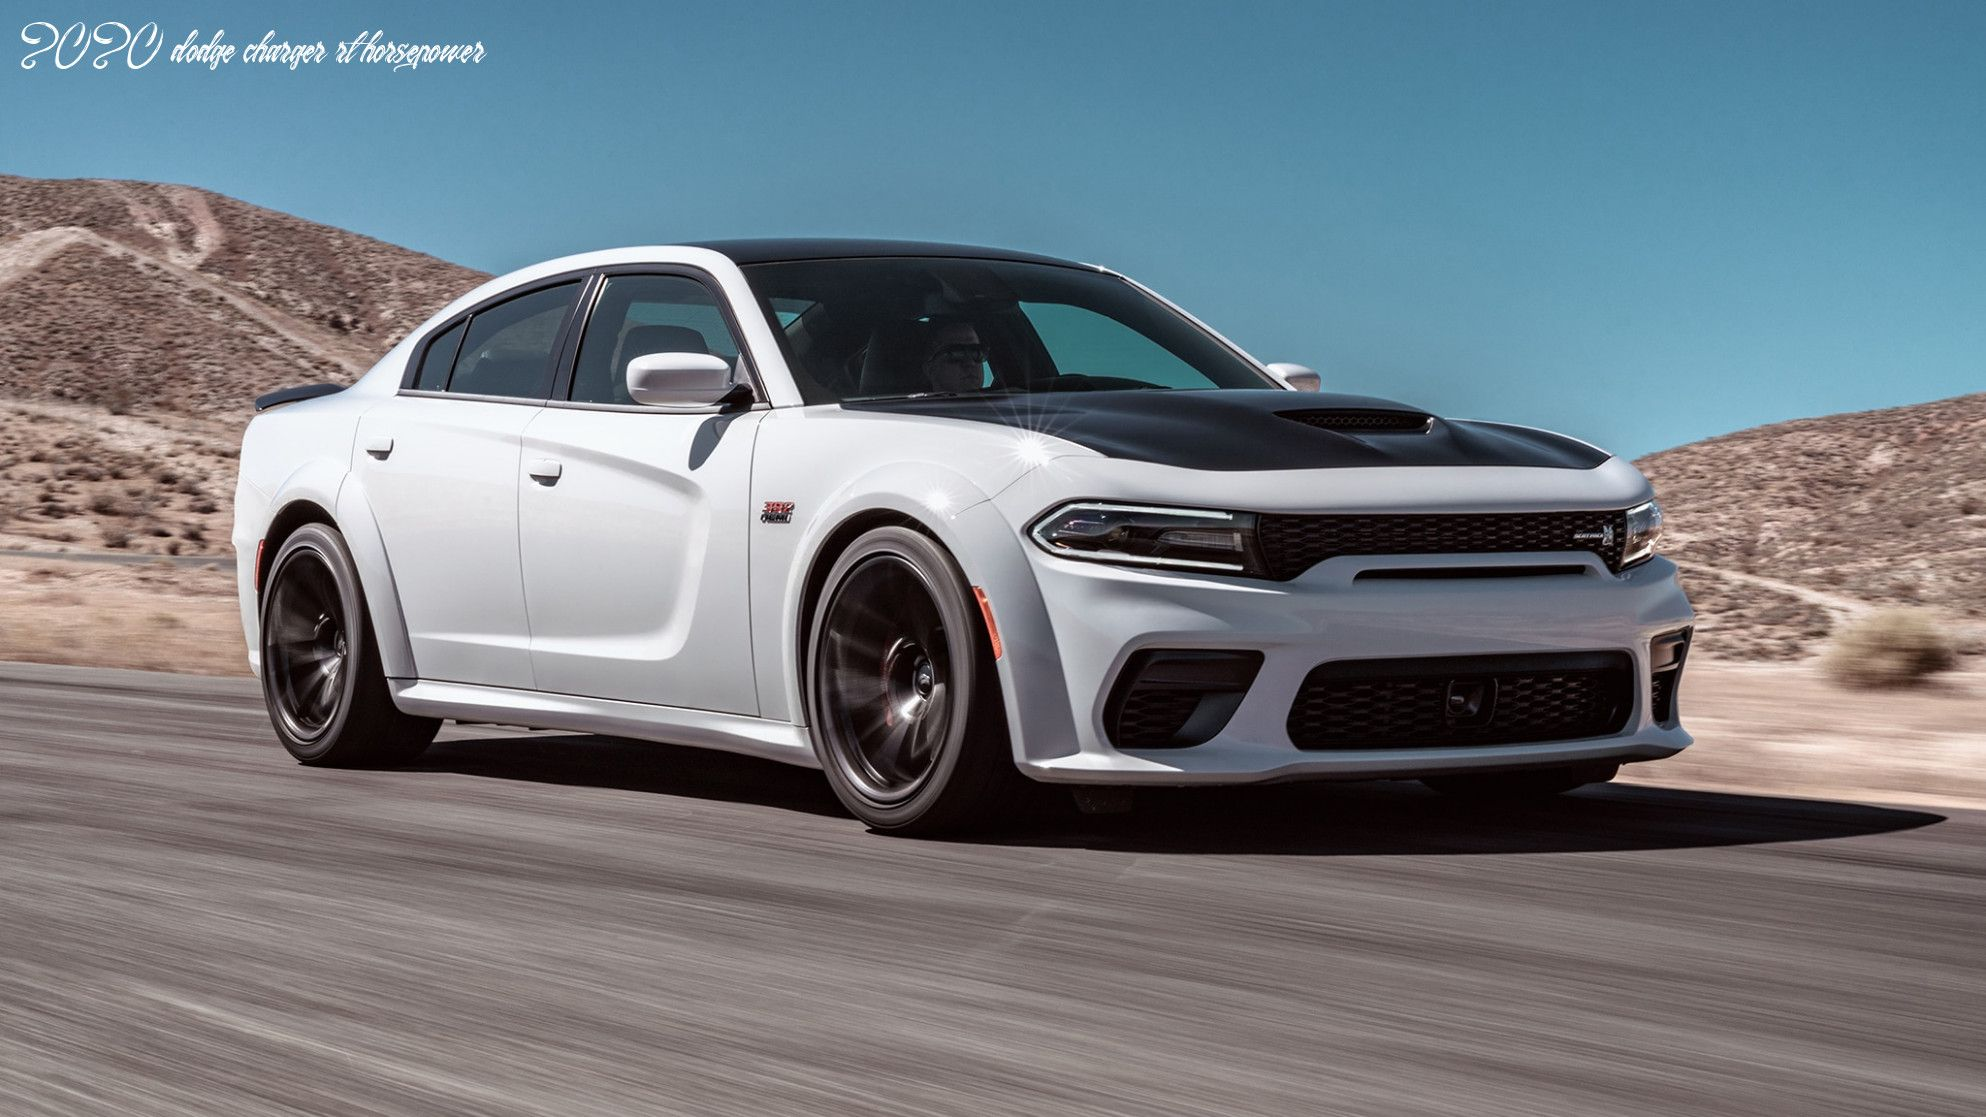 2020 Dodge Charger Rt Horsepower In 2020 Dodge Charger Srt Charger Srt Dodge Charger Hellcat